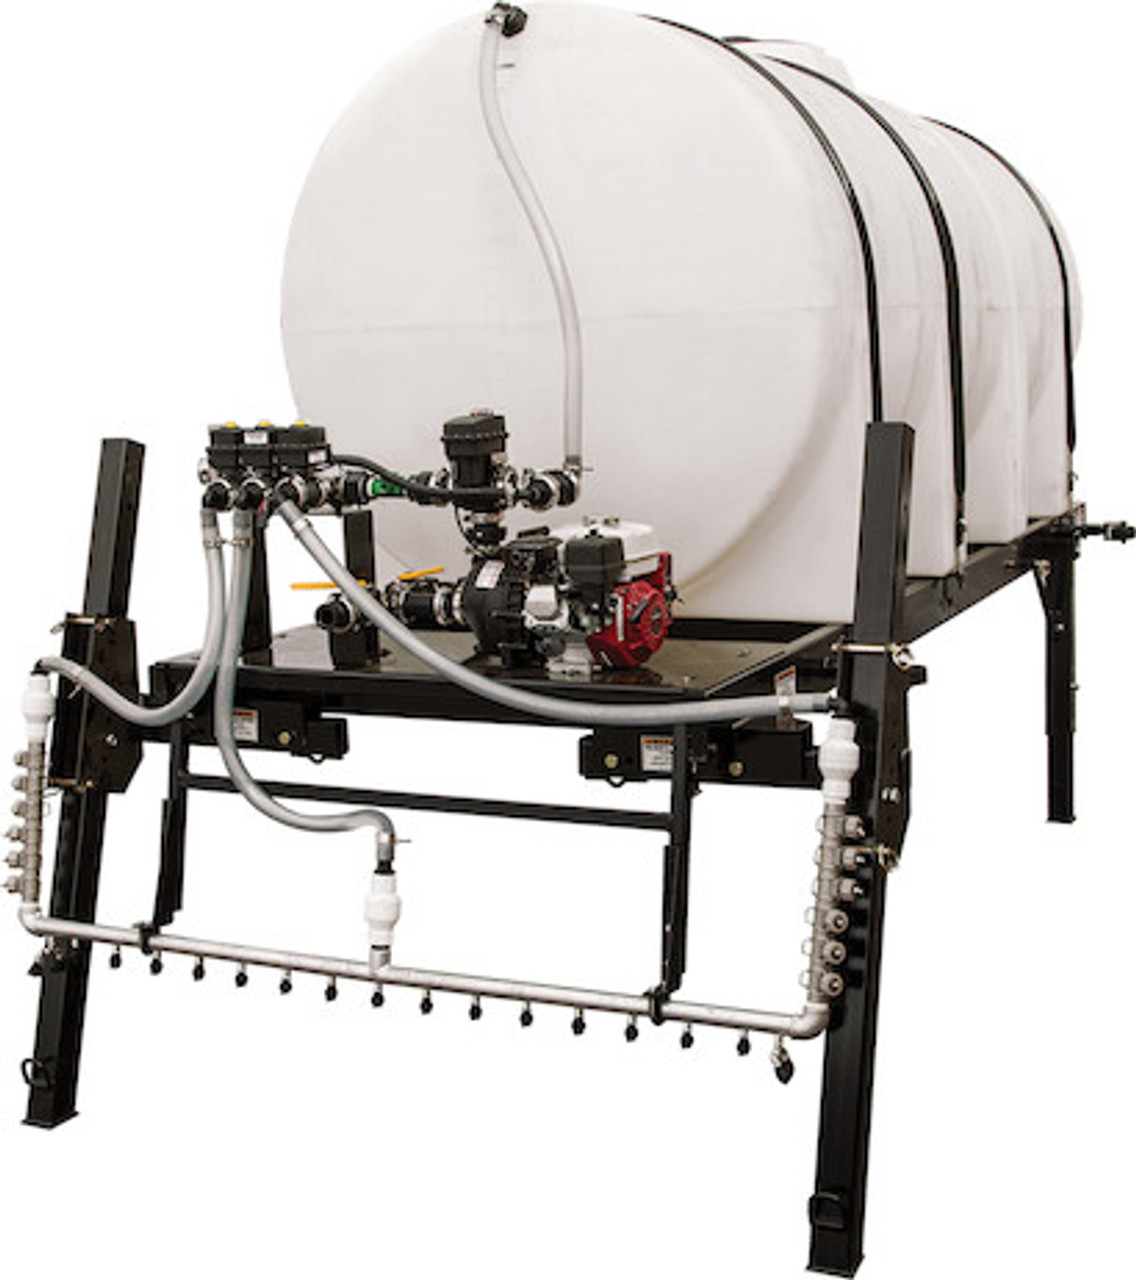 6191616 BUYERS SALT DOGG 1065 Gallon Gas-Powered Anti-Ice System With Three-Lane Spray Bar And Automatic Application Rate Control